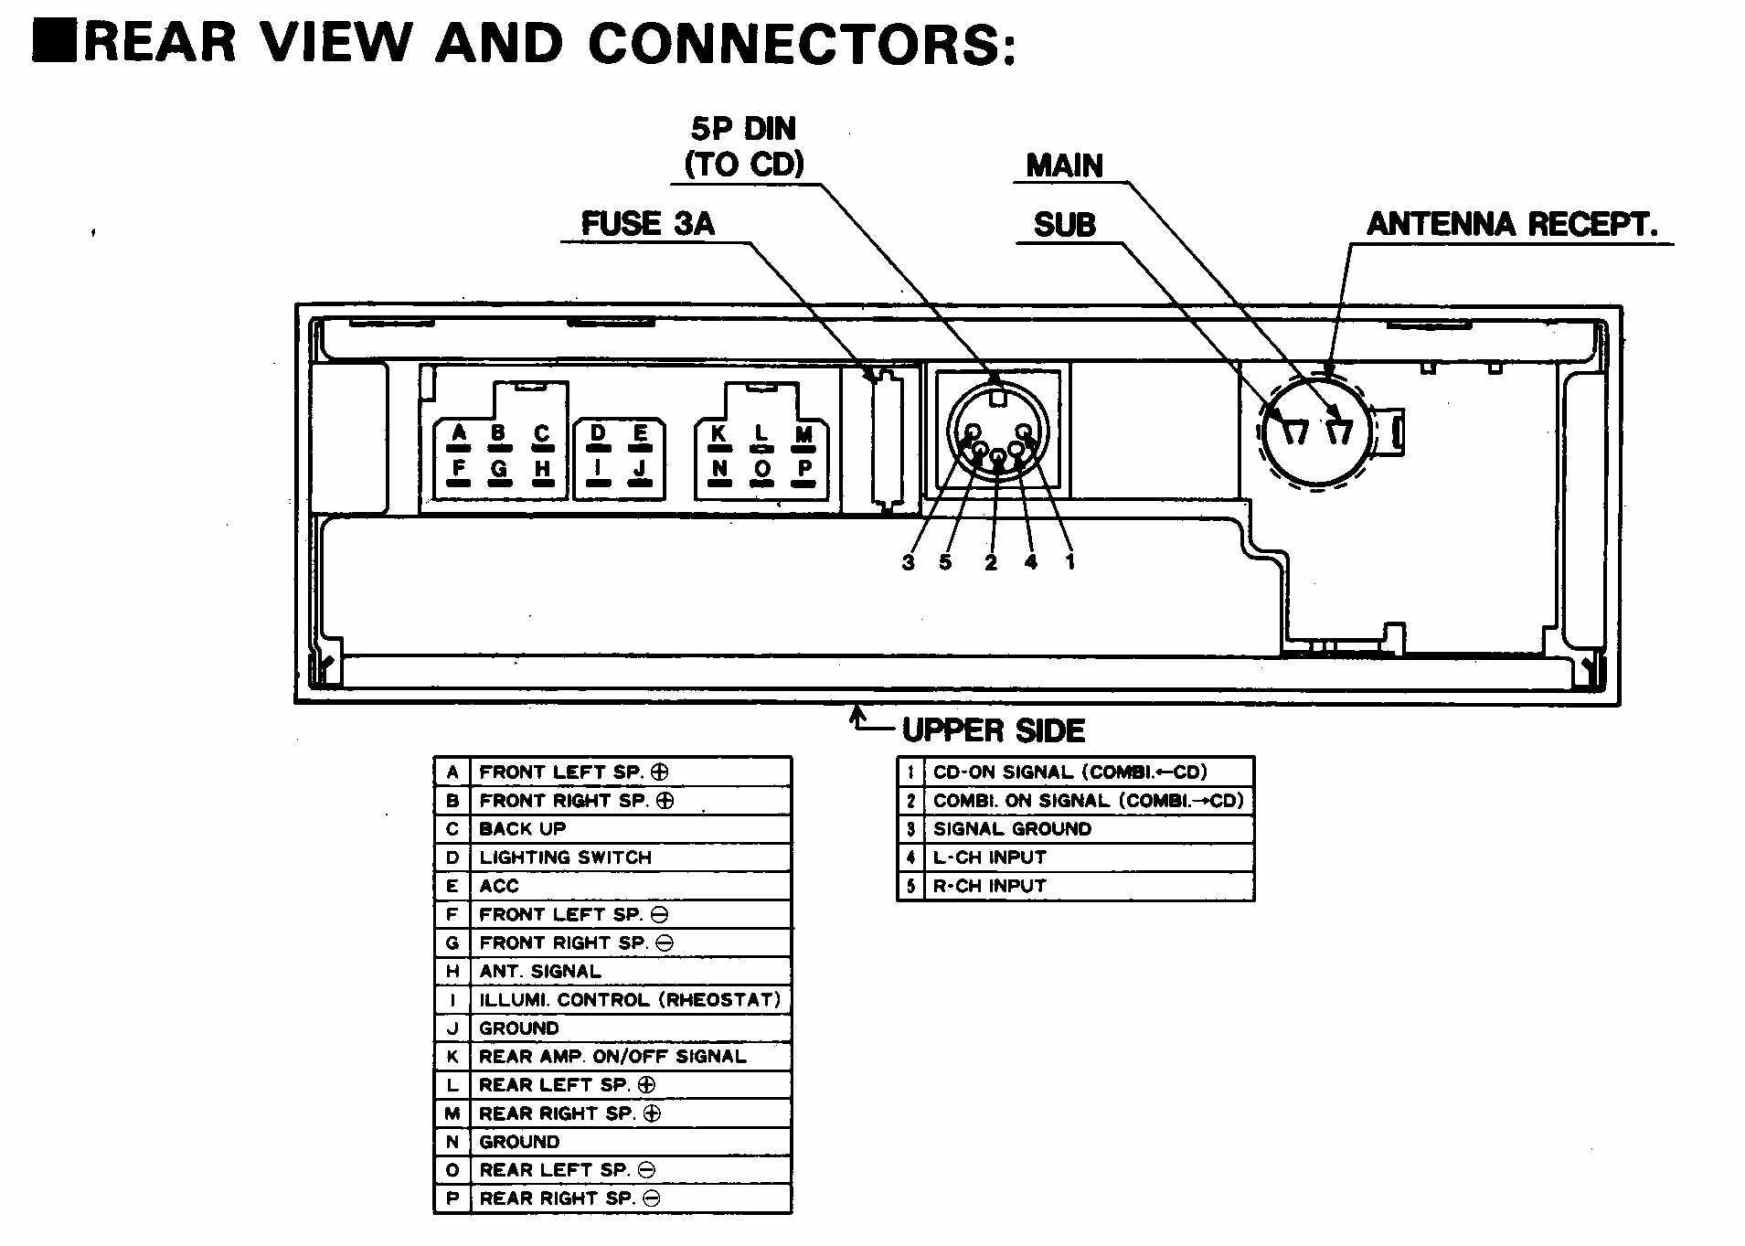 panasonic compressor diagram all about repair and wiring collections panasonic compressor diagram panasonic radio wiring diagram wiring diagram wireharnessnis03180201 panasonic radio wiring diagram